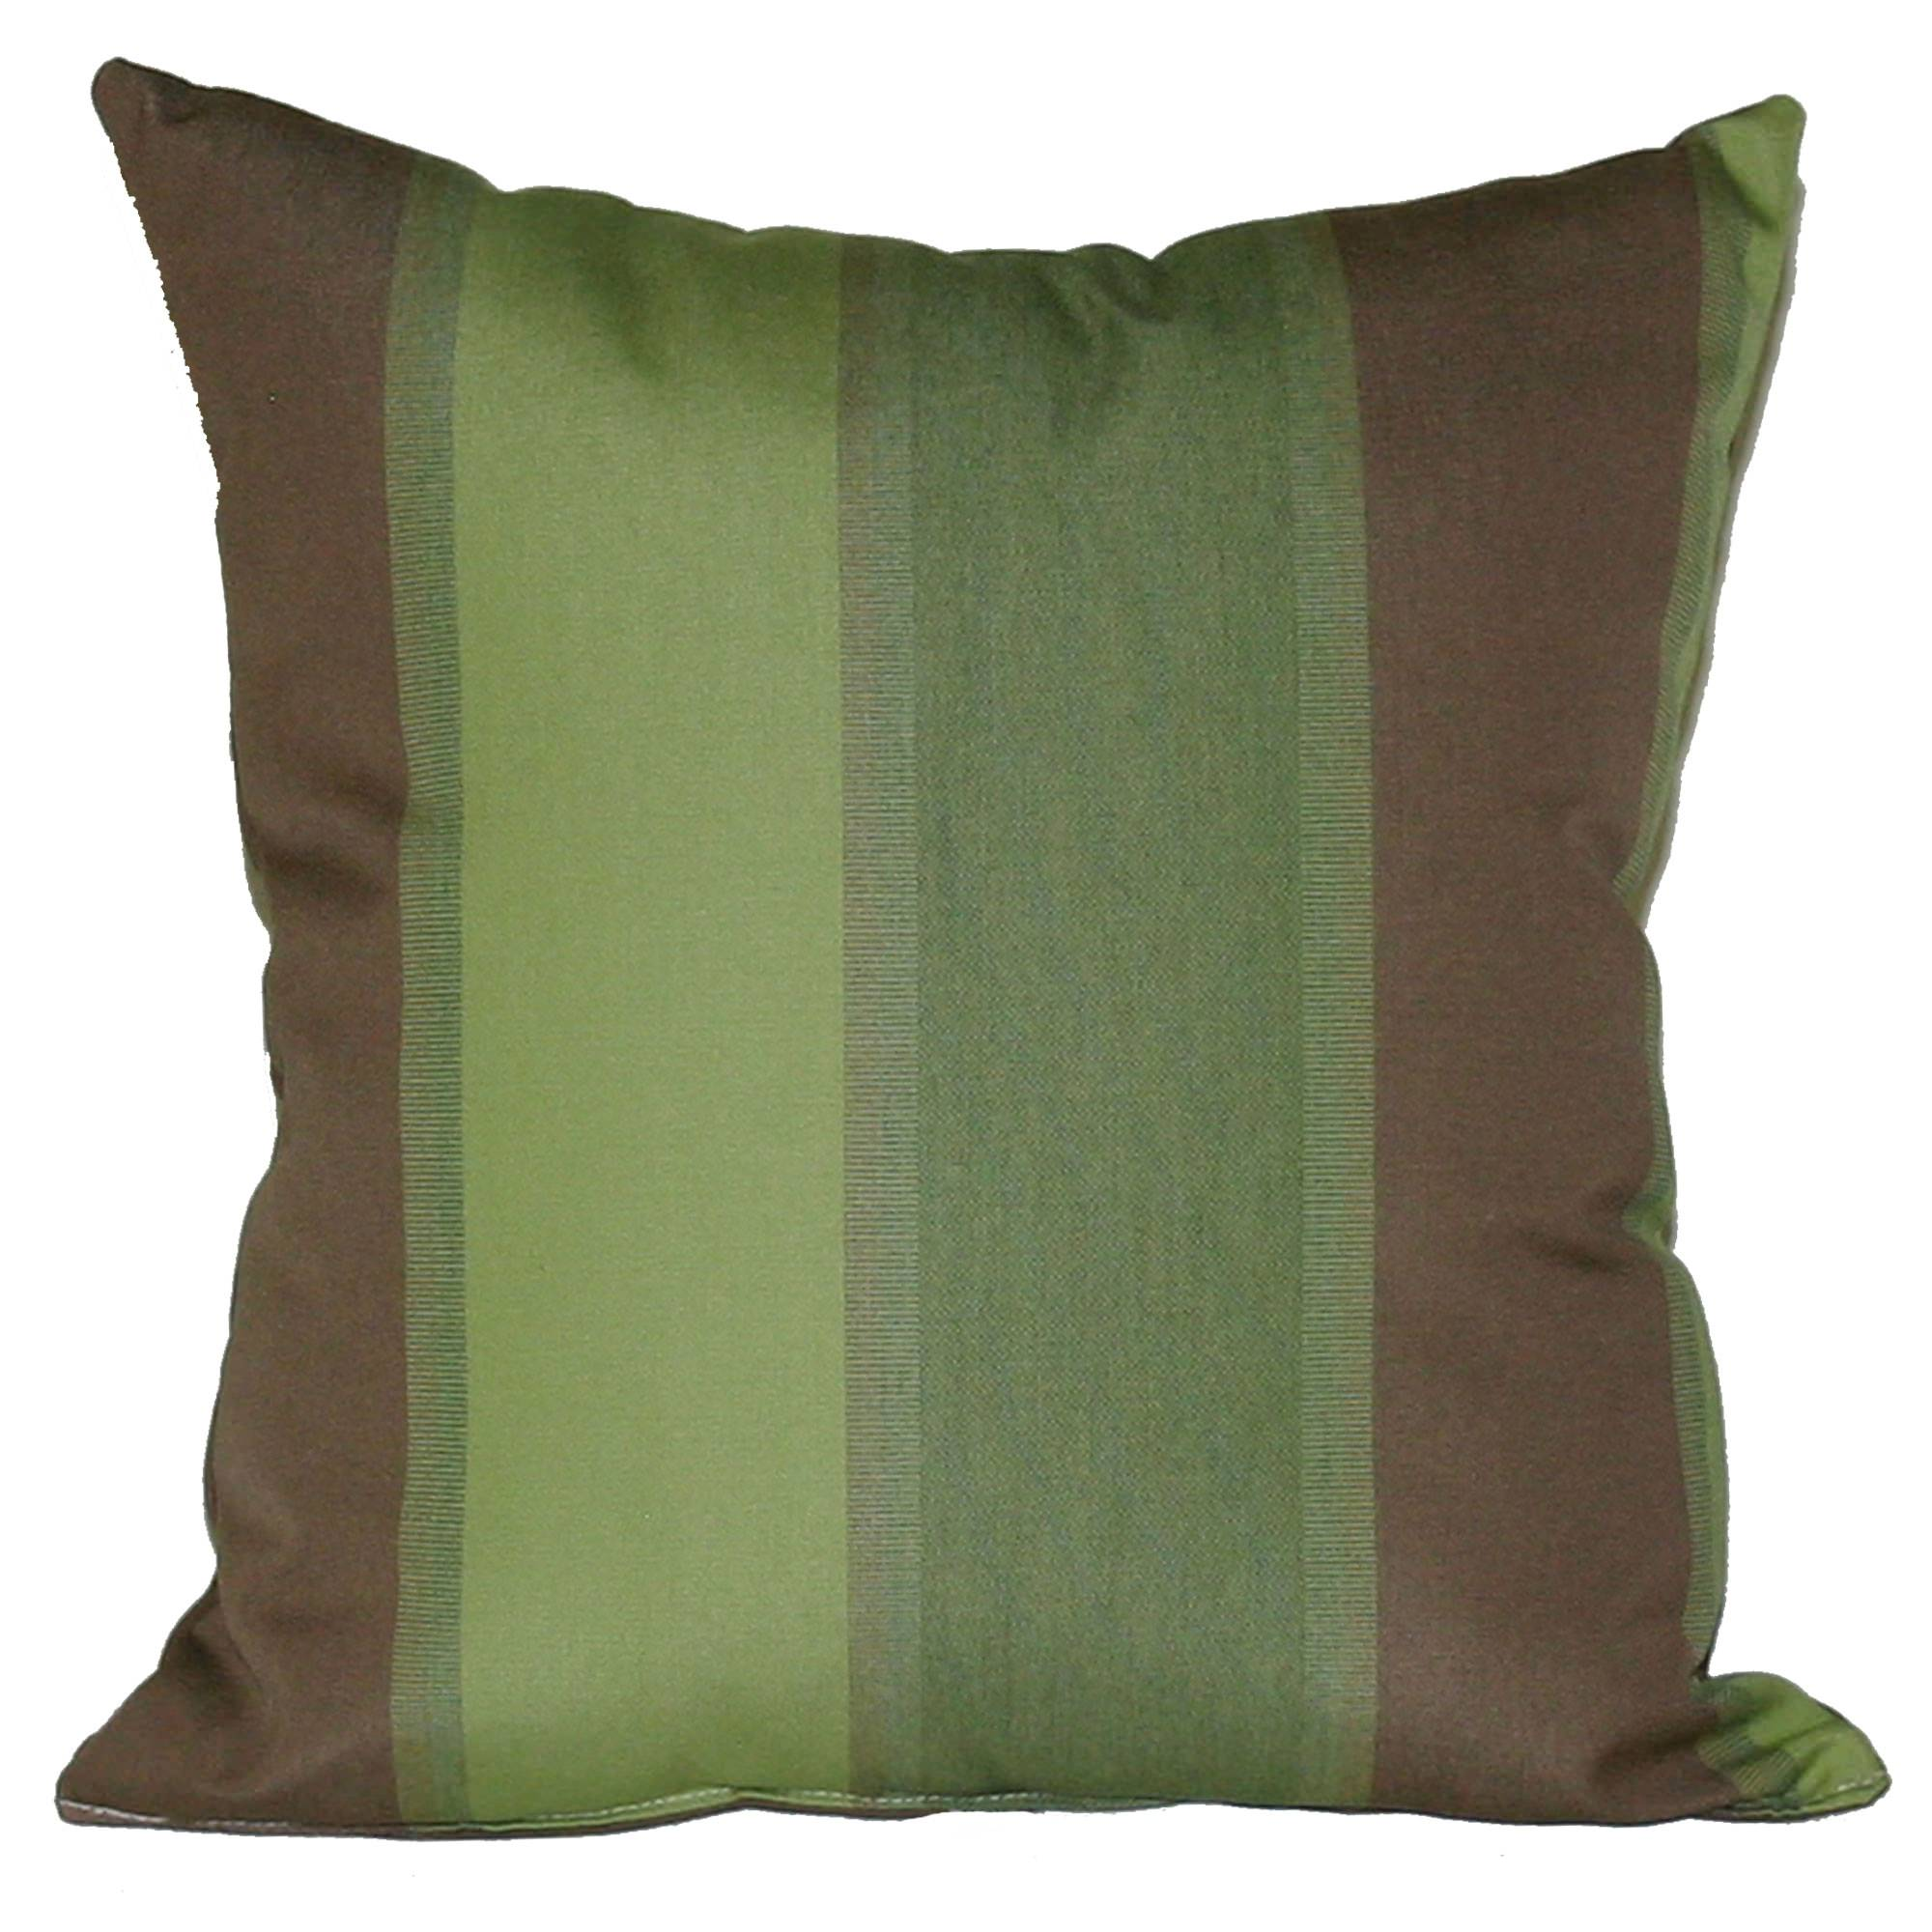 Designed For Outdoors Bsqpt Throw Outdoor Pillow